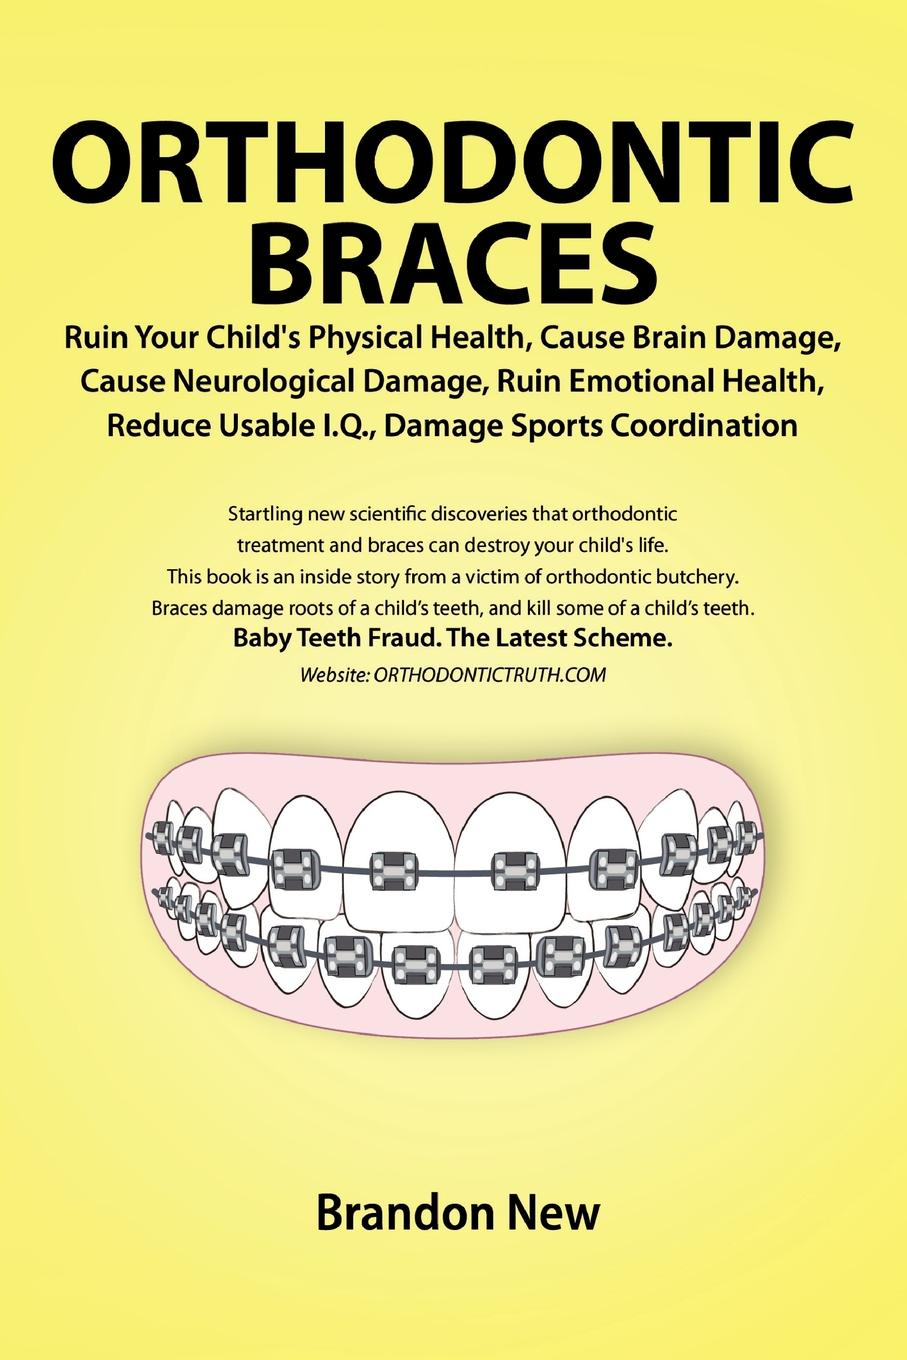 Brandon New Orthodontic Braces Ruin Your Child's Physical Health, Cause Brain Damage, Cause Neurological Damage, Ruin Emotional Health, Reduce Usable I.Q., Damage Sports Coordination oana cazacu dynamic damage and fragmentation